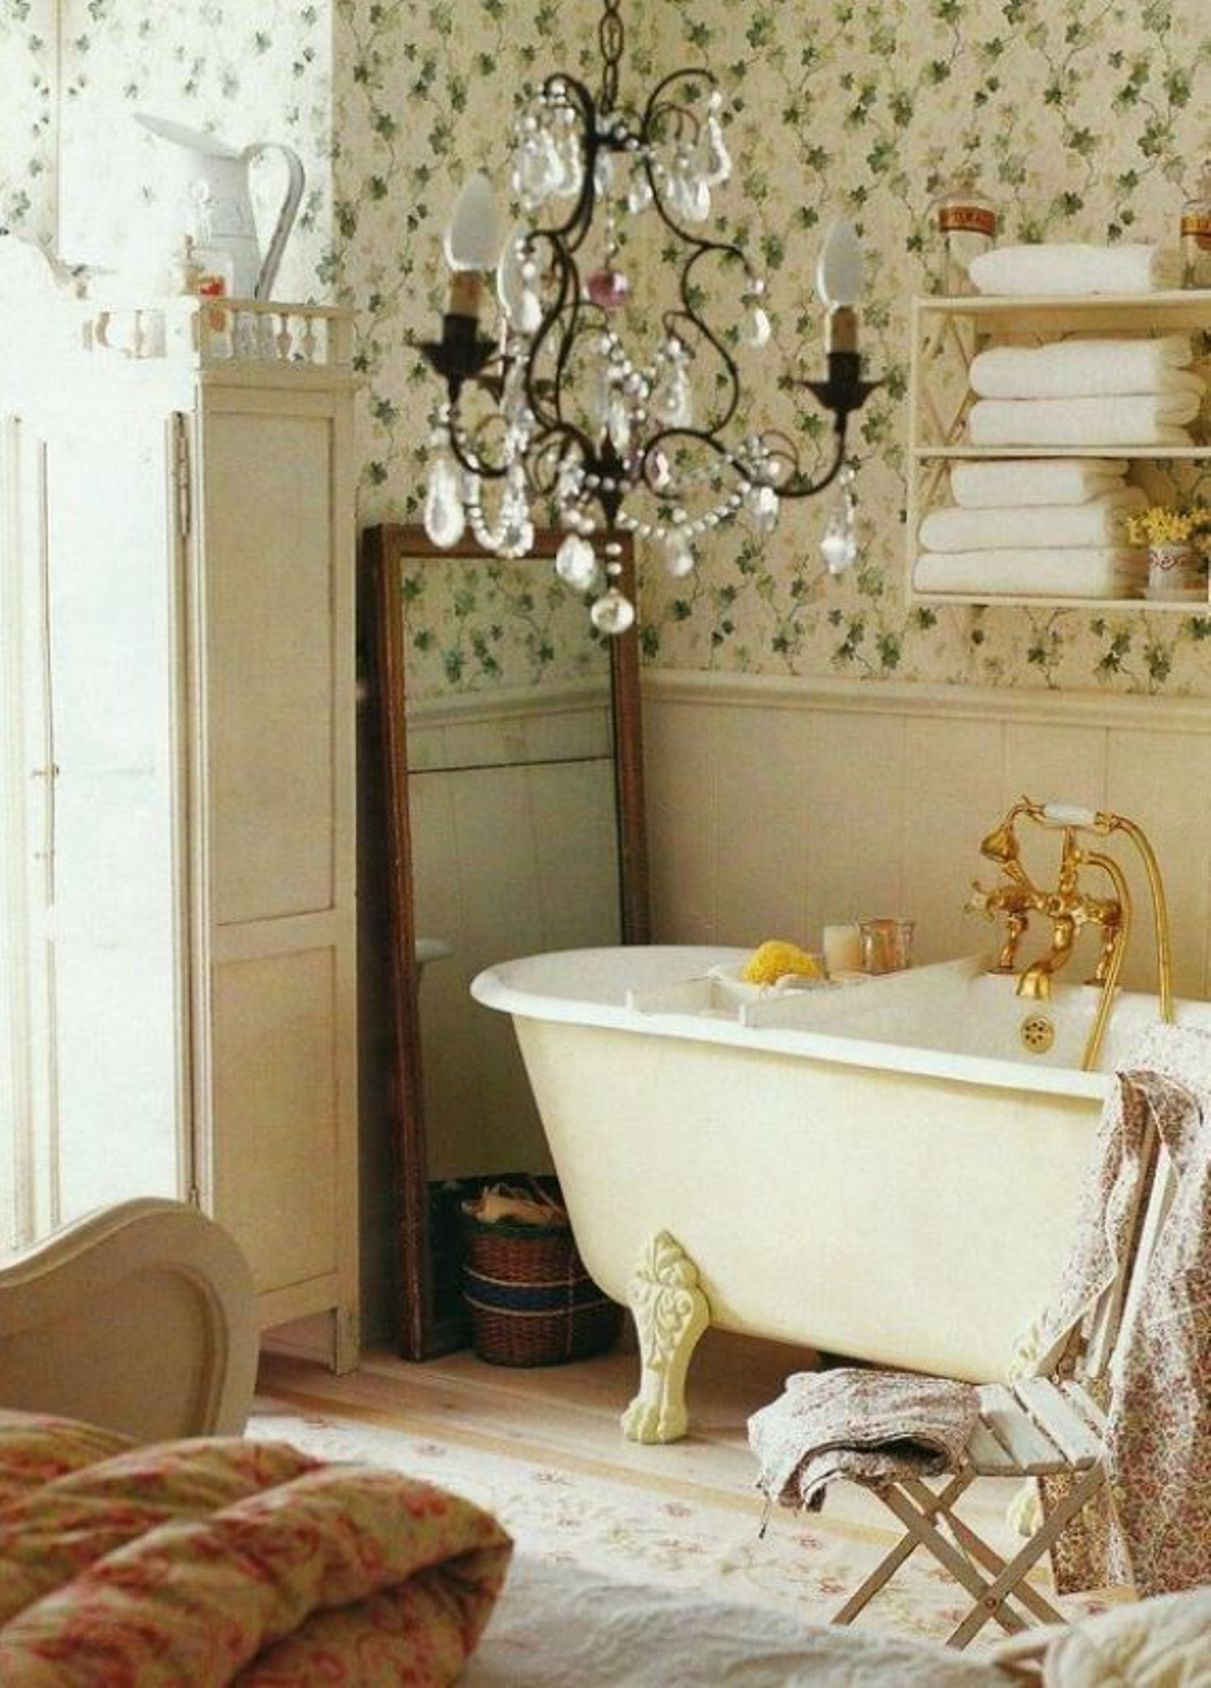 30 shabby chic bathroom design ideas to get inspired. Black Bedroom Furniture Sets. Home Design Ideas